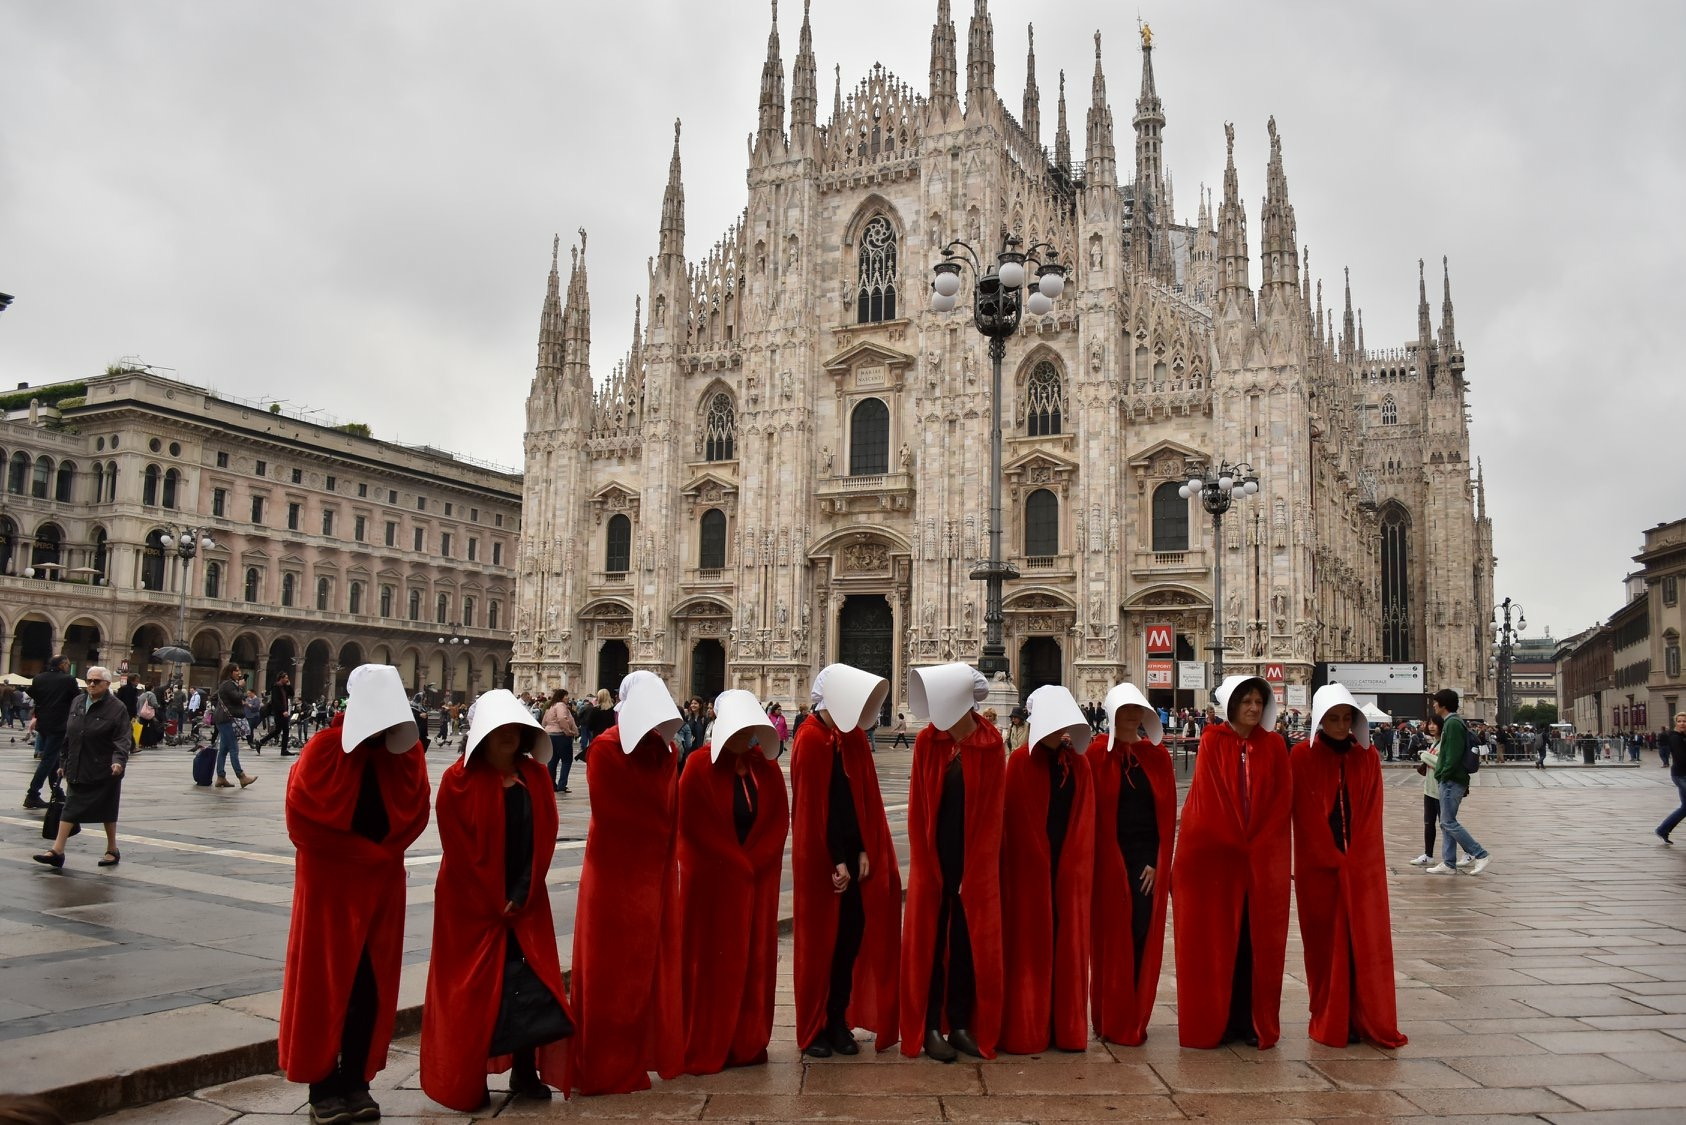 A performance made by a group of women from the feminist collective Non Una di Meno in May 2018. They dressed as handmaids in front of the imposing Duomo of the metropolitan city of Milan.